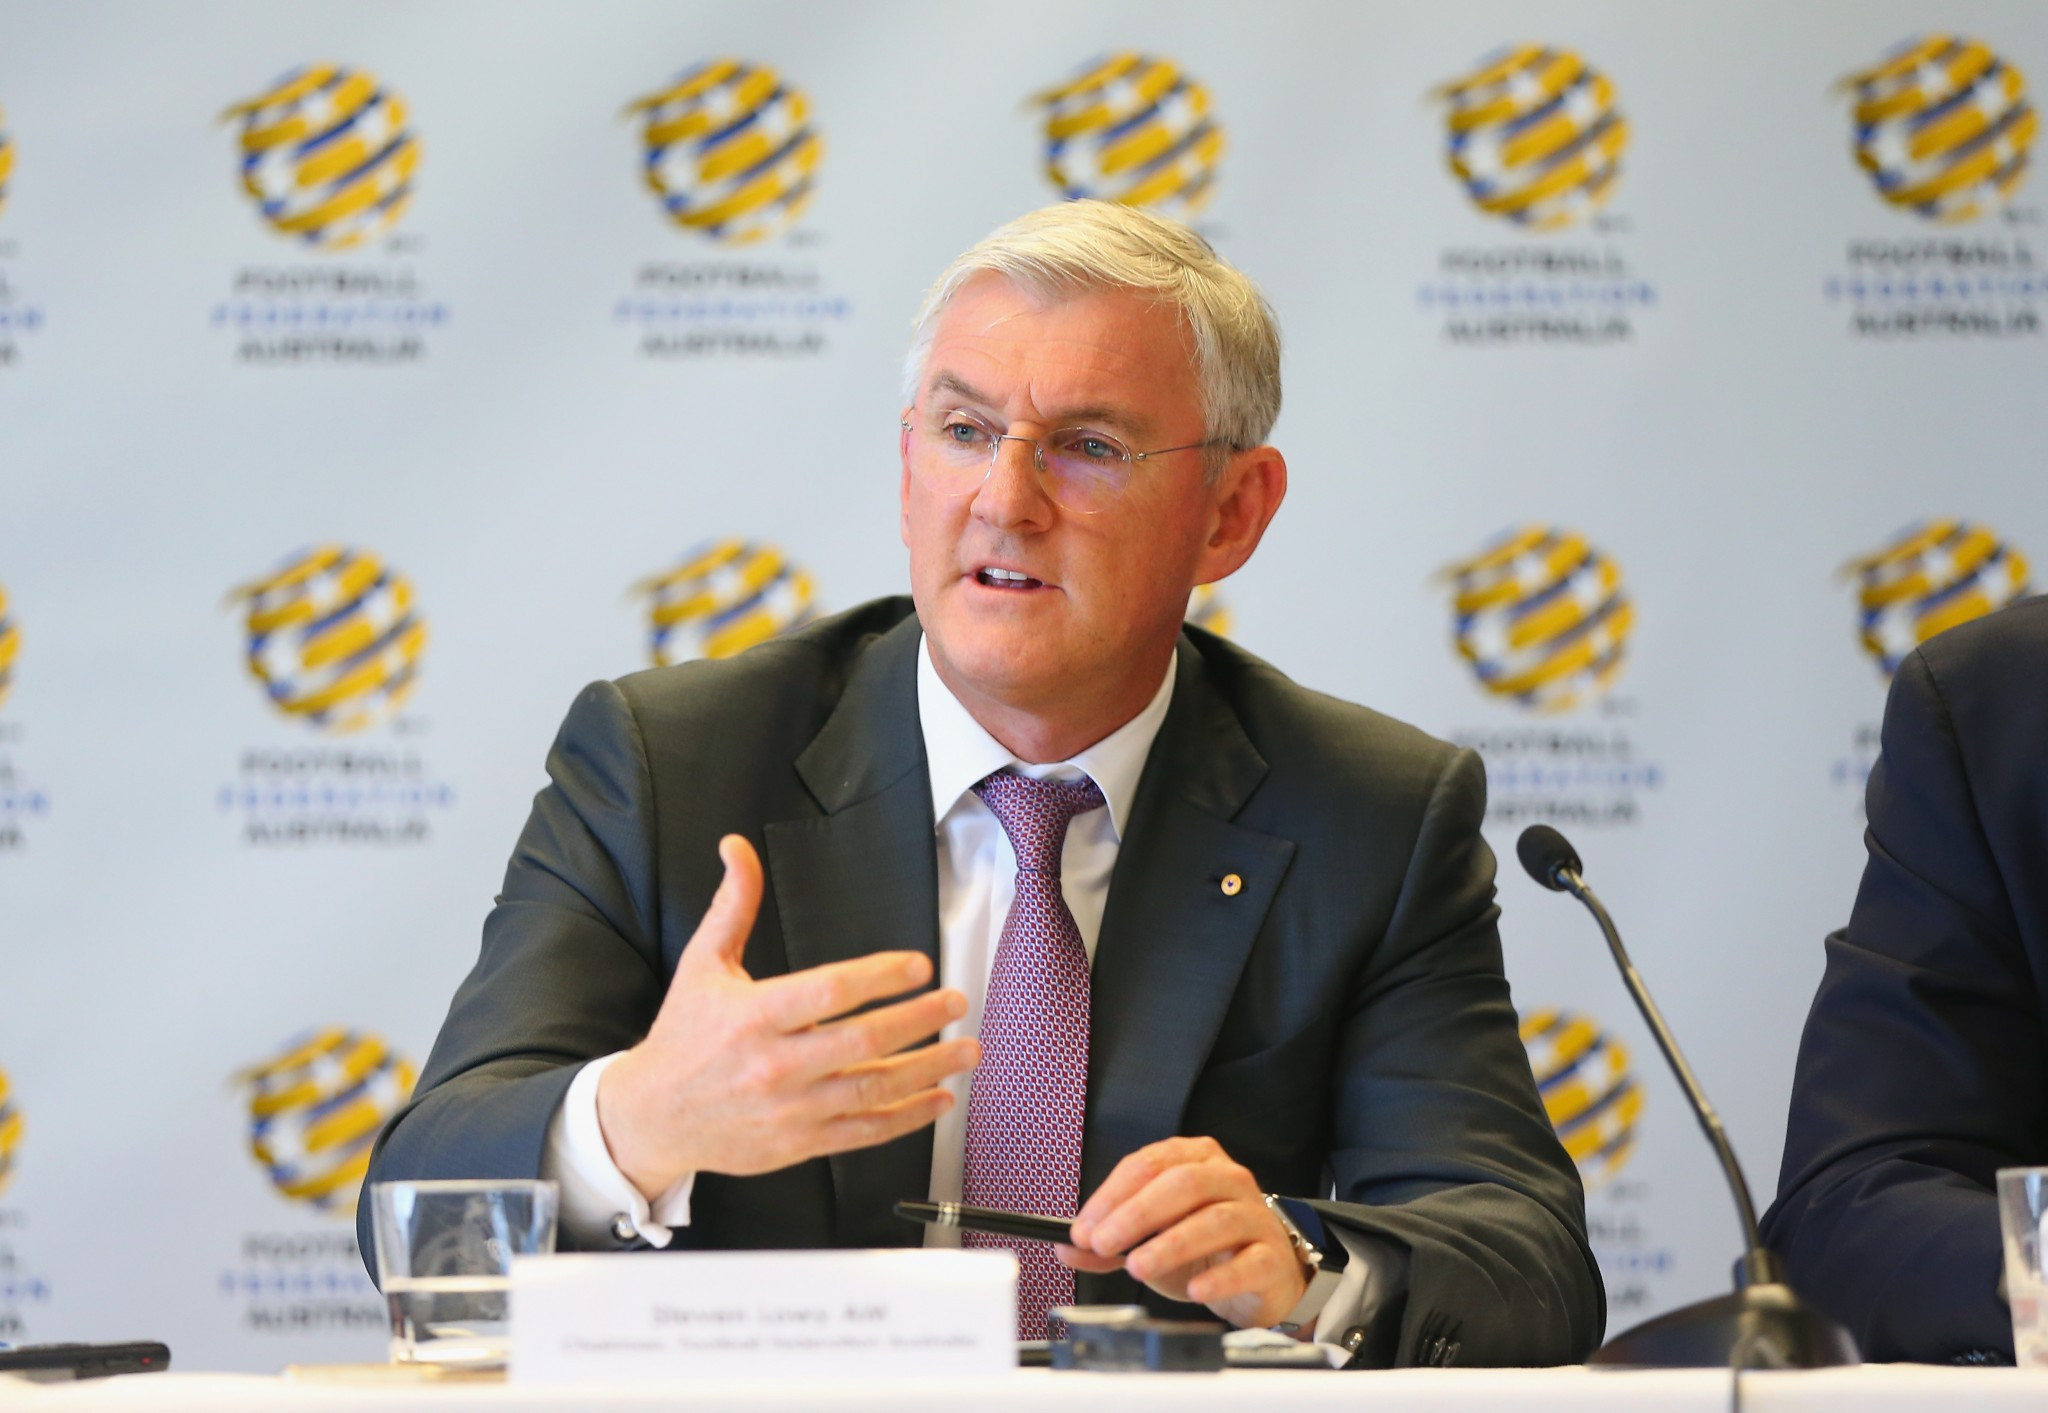 Football Federation Australia chairman claims progress made towards resolving row after FIFA and AFC visit